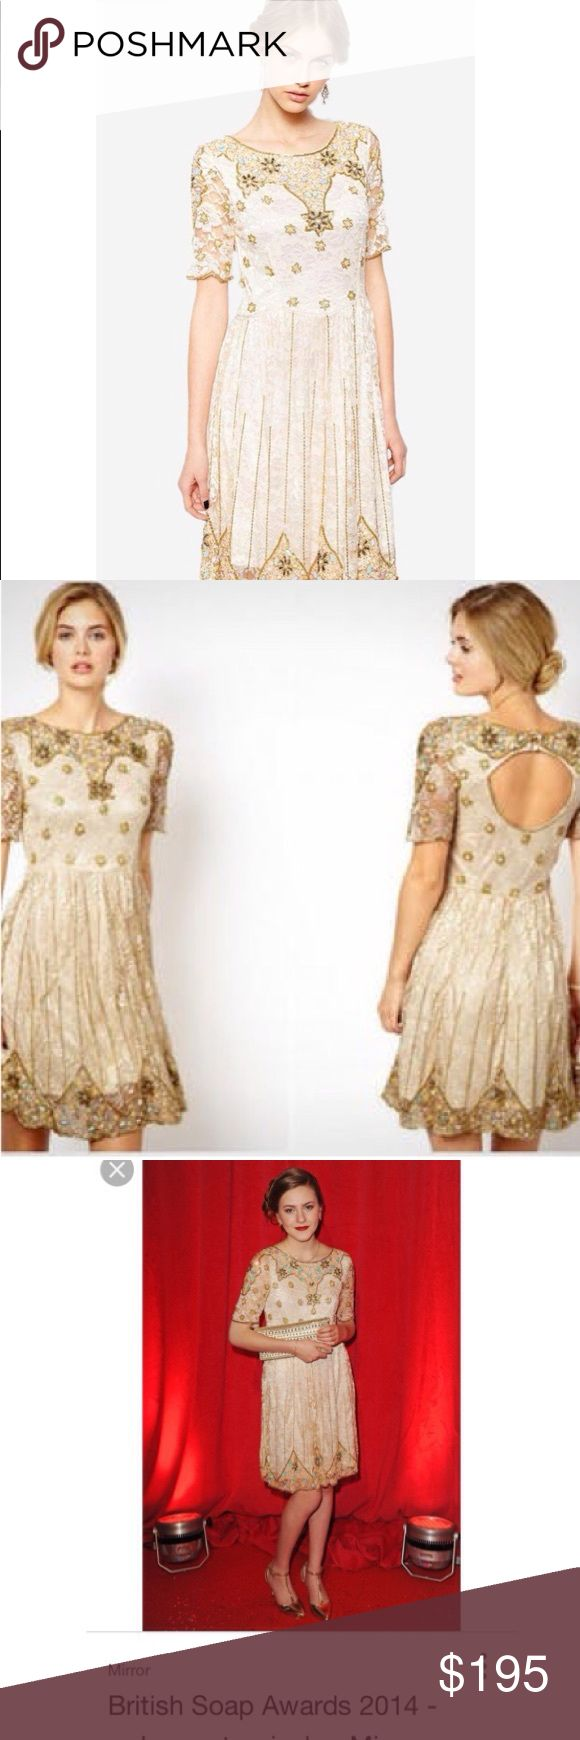 """Frock and Frill Embellished Lace Slater Dress Frock and Frill Embellished Lace Slater Dress in size 14, gold color. Garment has been embellished by hand. Very beautiful dress. Brand new with tag it's just at the back has some missing beads pls see photo. Pit to pit 19"""", length 38"""". Frock and Frill Dresses Midi"""